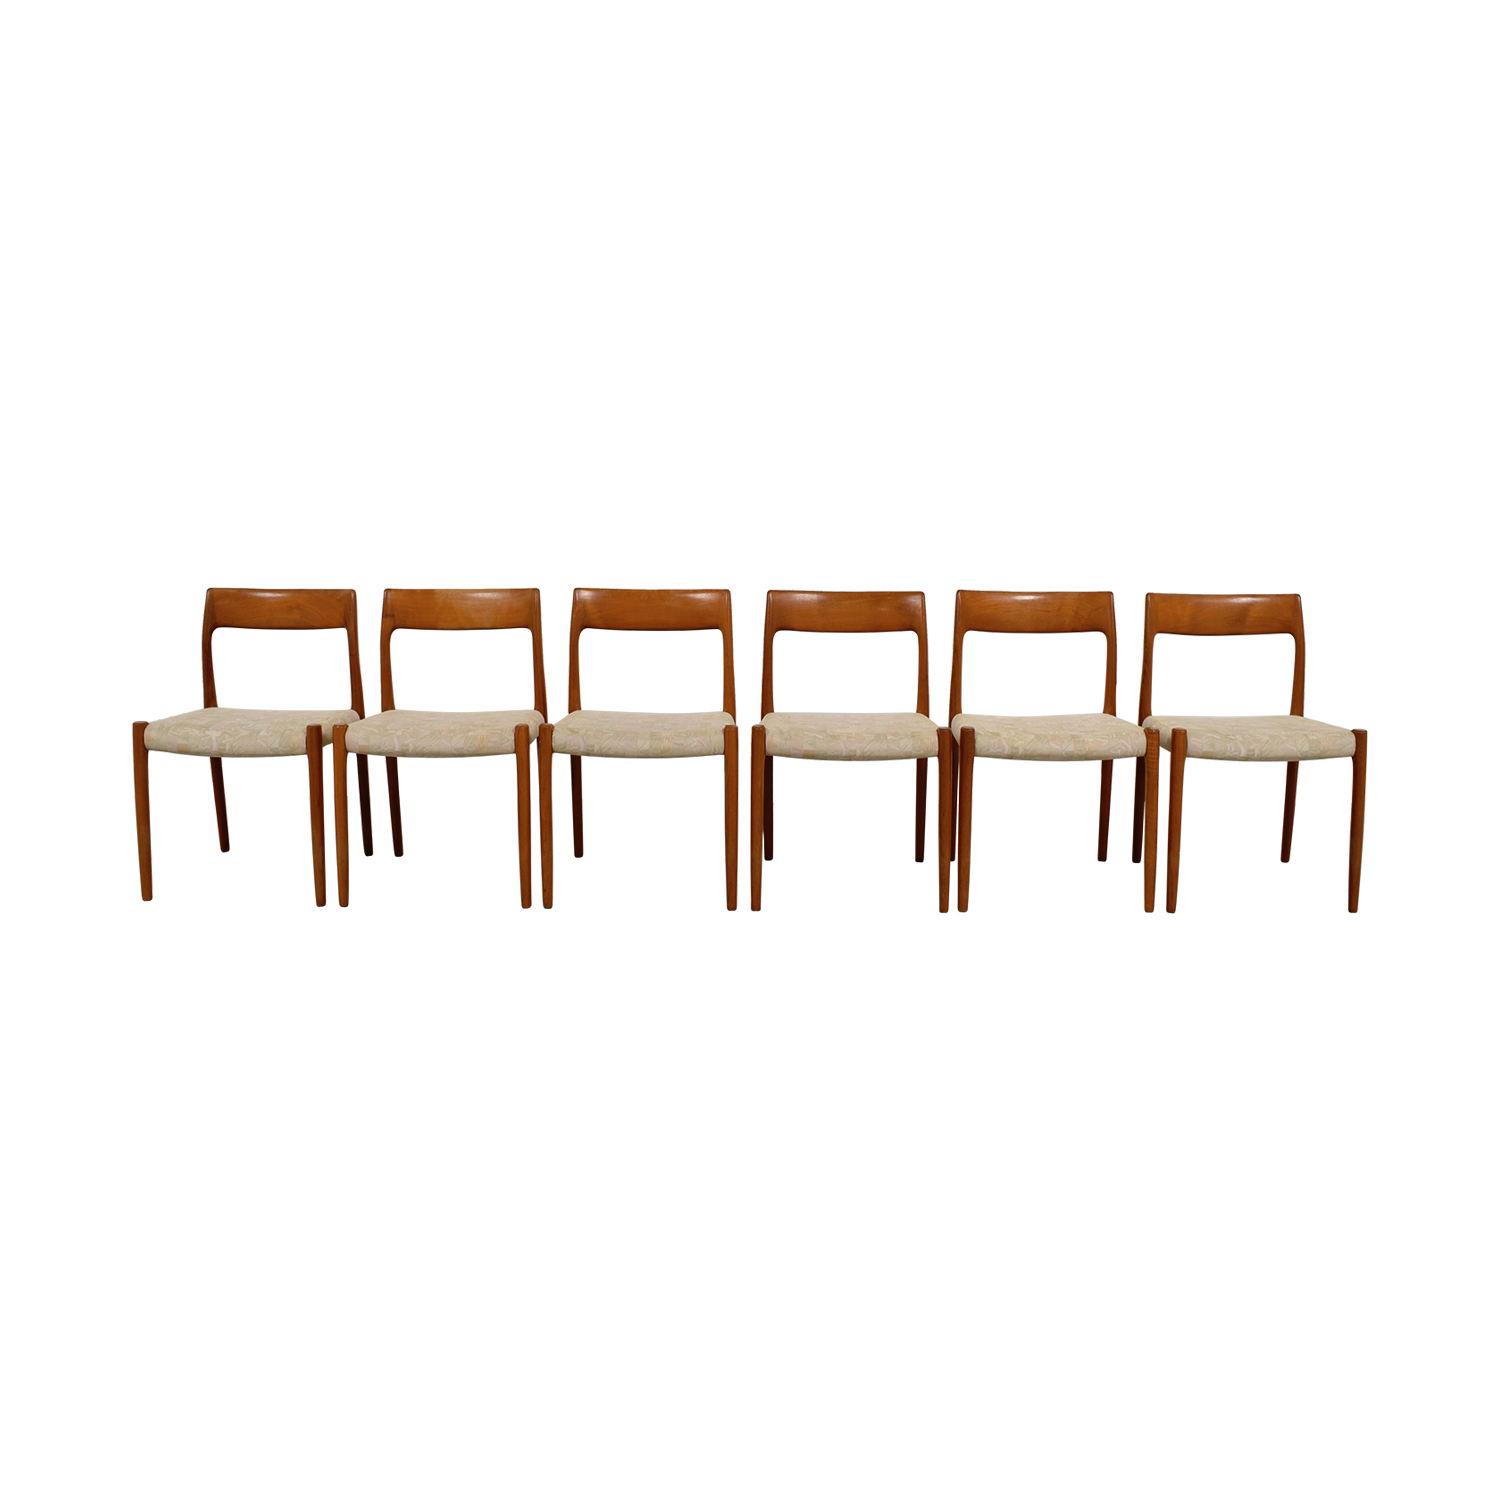 Skandinavian Furniture Wood Upholstered Dining Chairs / Dining Chairs